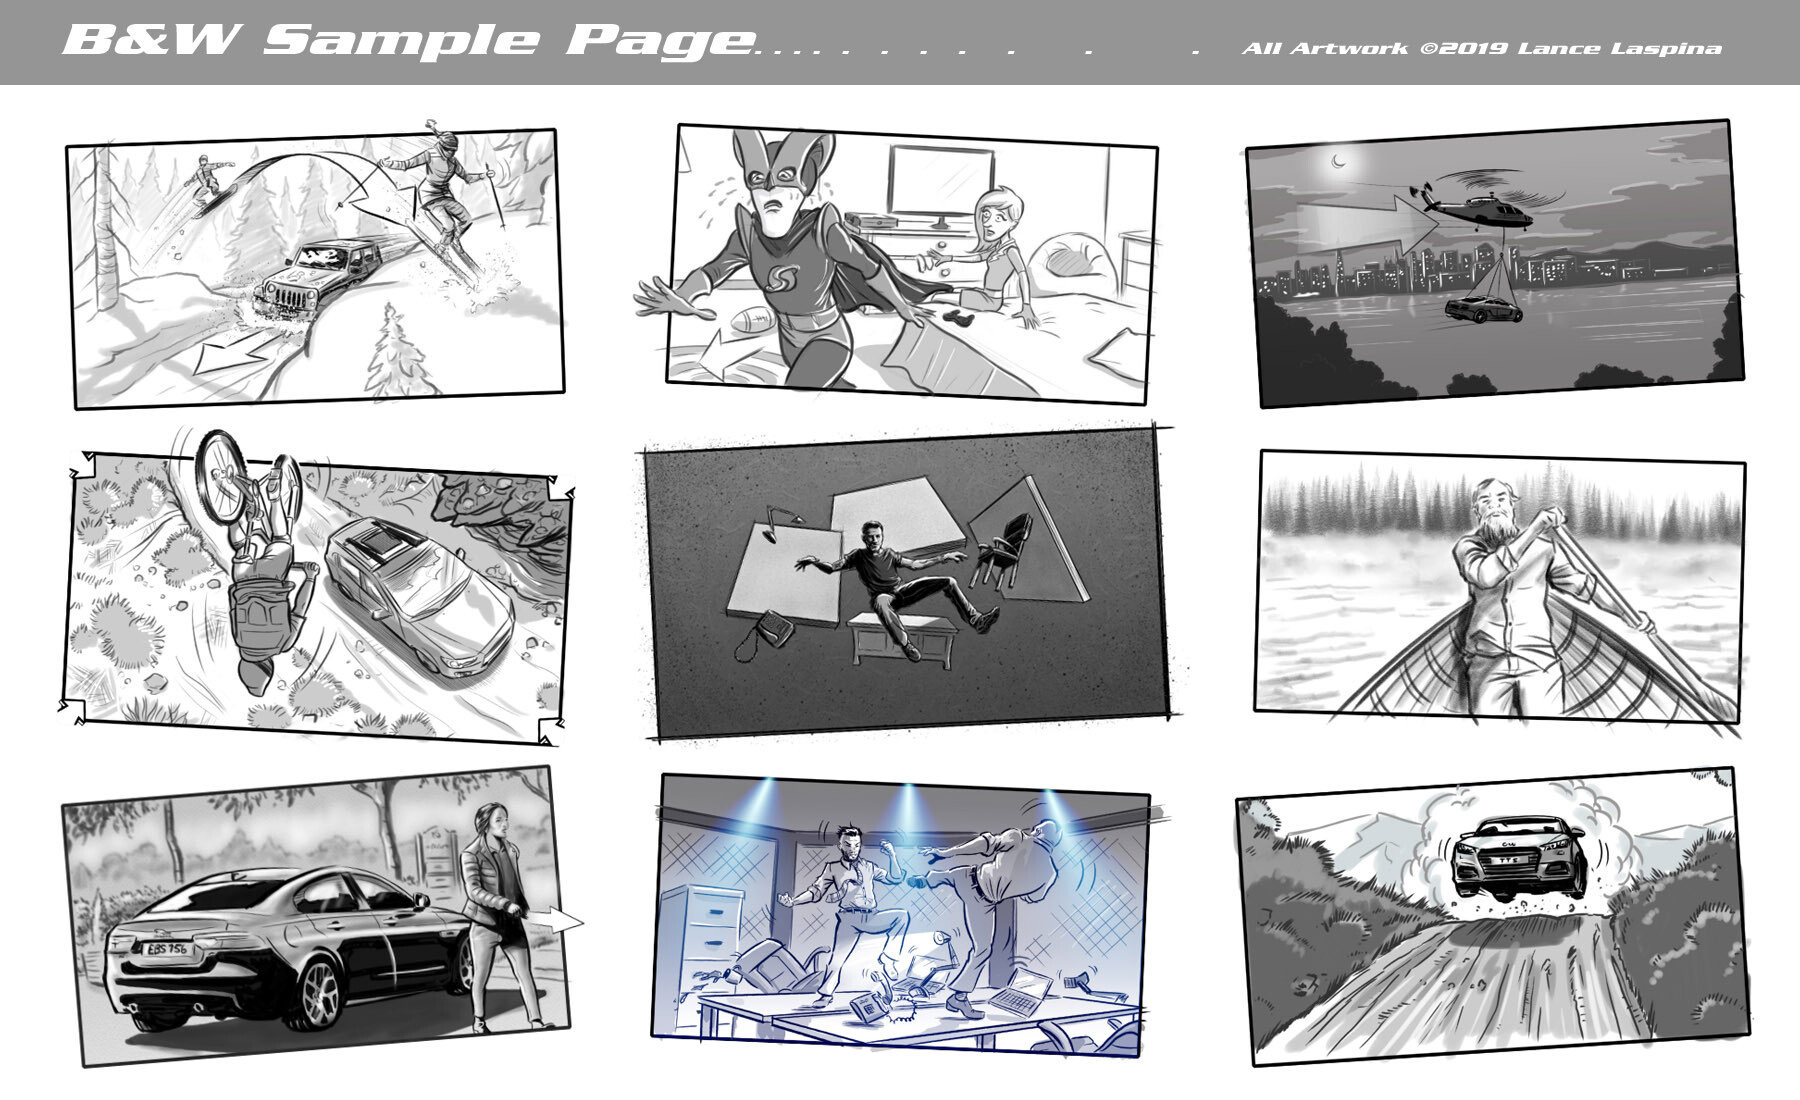 Lance laspina as storyboardsamples 01